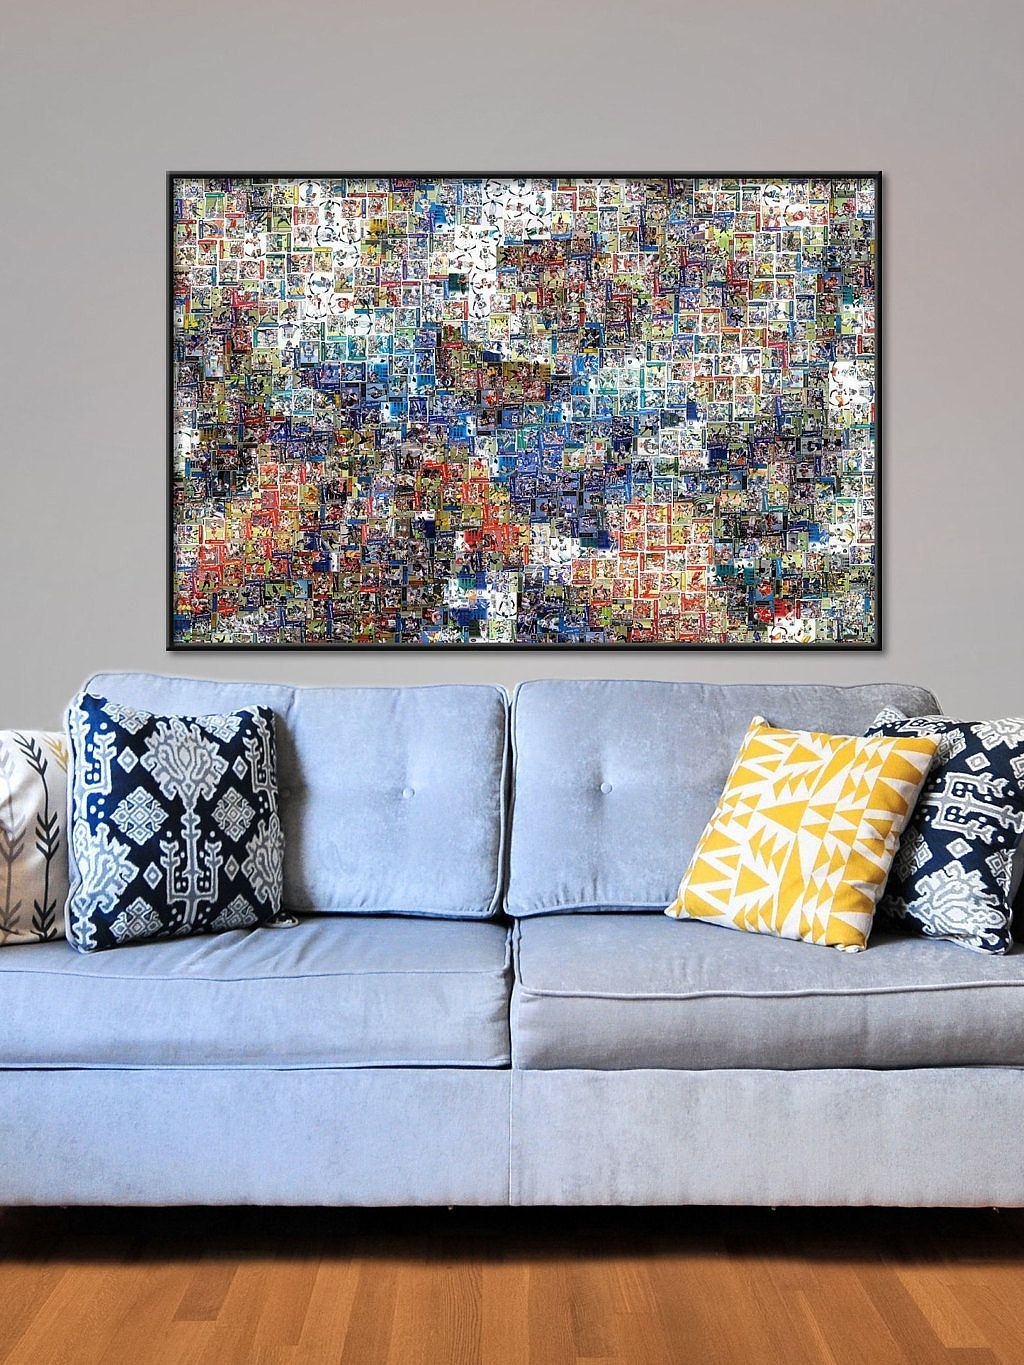 Football Wall Art – Matthew Stafford Mosaic – Detroit Lions Intended For Most Up To Date Nfl Wall Art (View 11 of 15)